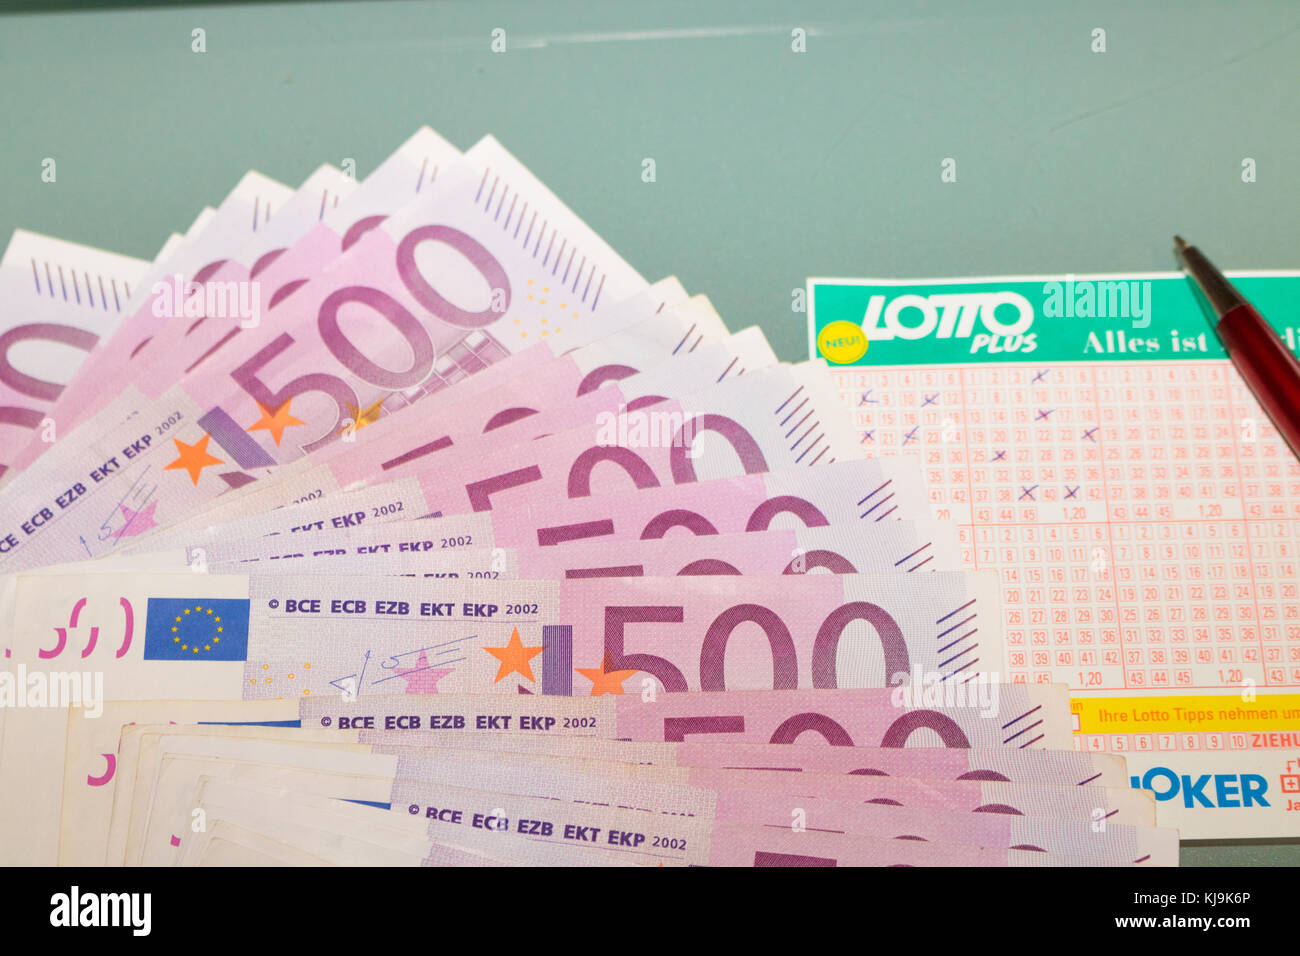 Lottery Winner Ticket Stock Photos & Lottery Winner Ticket Stock ...